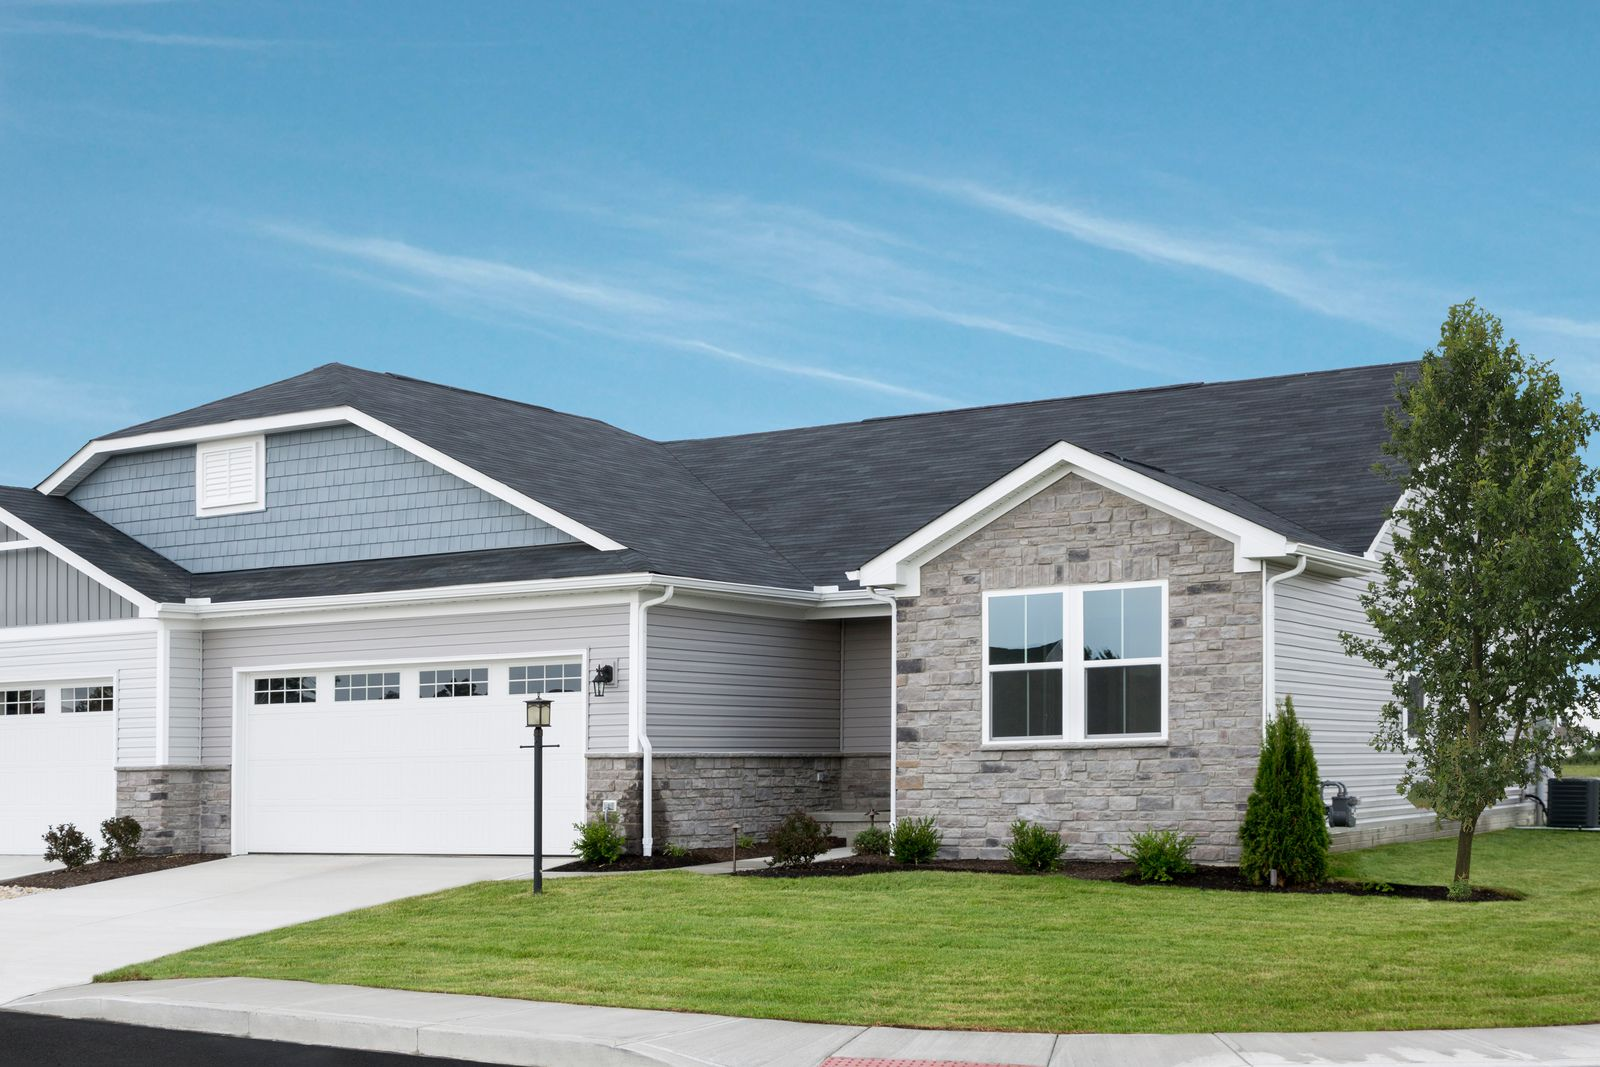 Welcome to Affordable Maintenance Free Living at Sedona Ridge in Harrison:Imagine easy living in a single-level home without the hassle of lawn care & snow removal. Enjoy local Harrison favorites being 4 mi from I-275 or enhance your leisure at the community pool.